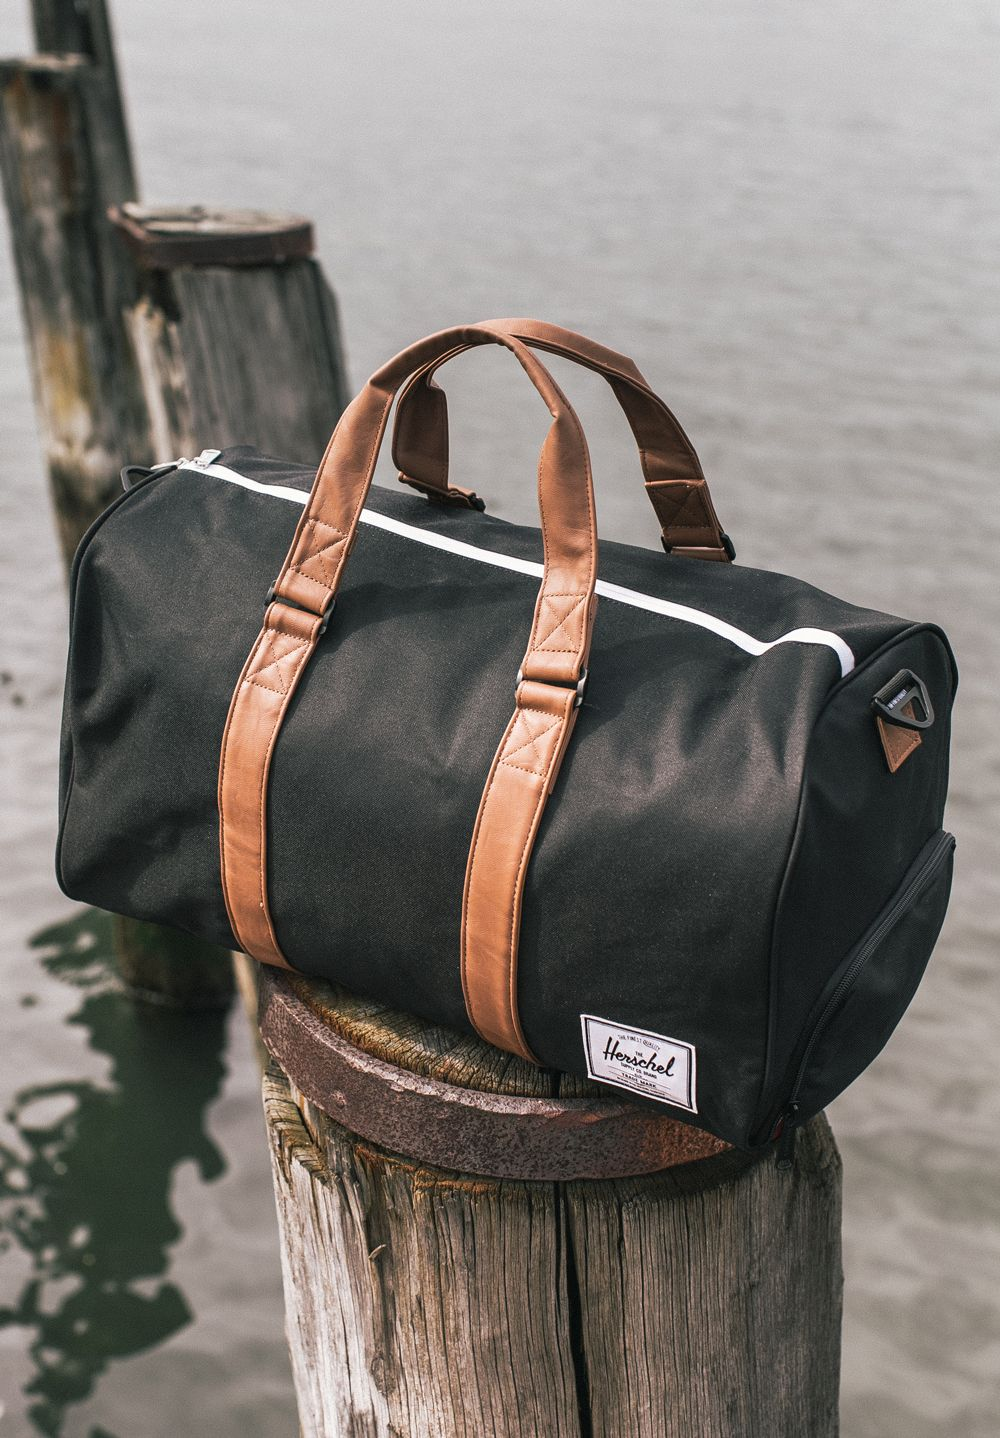 The Herschel Supply Co. Novel Duffle - The official bag of ...